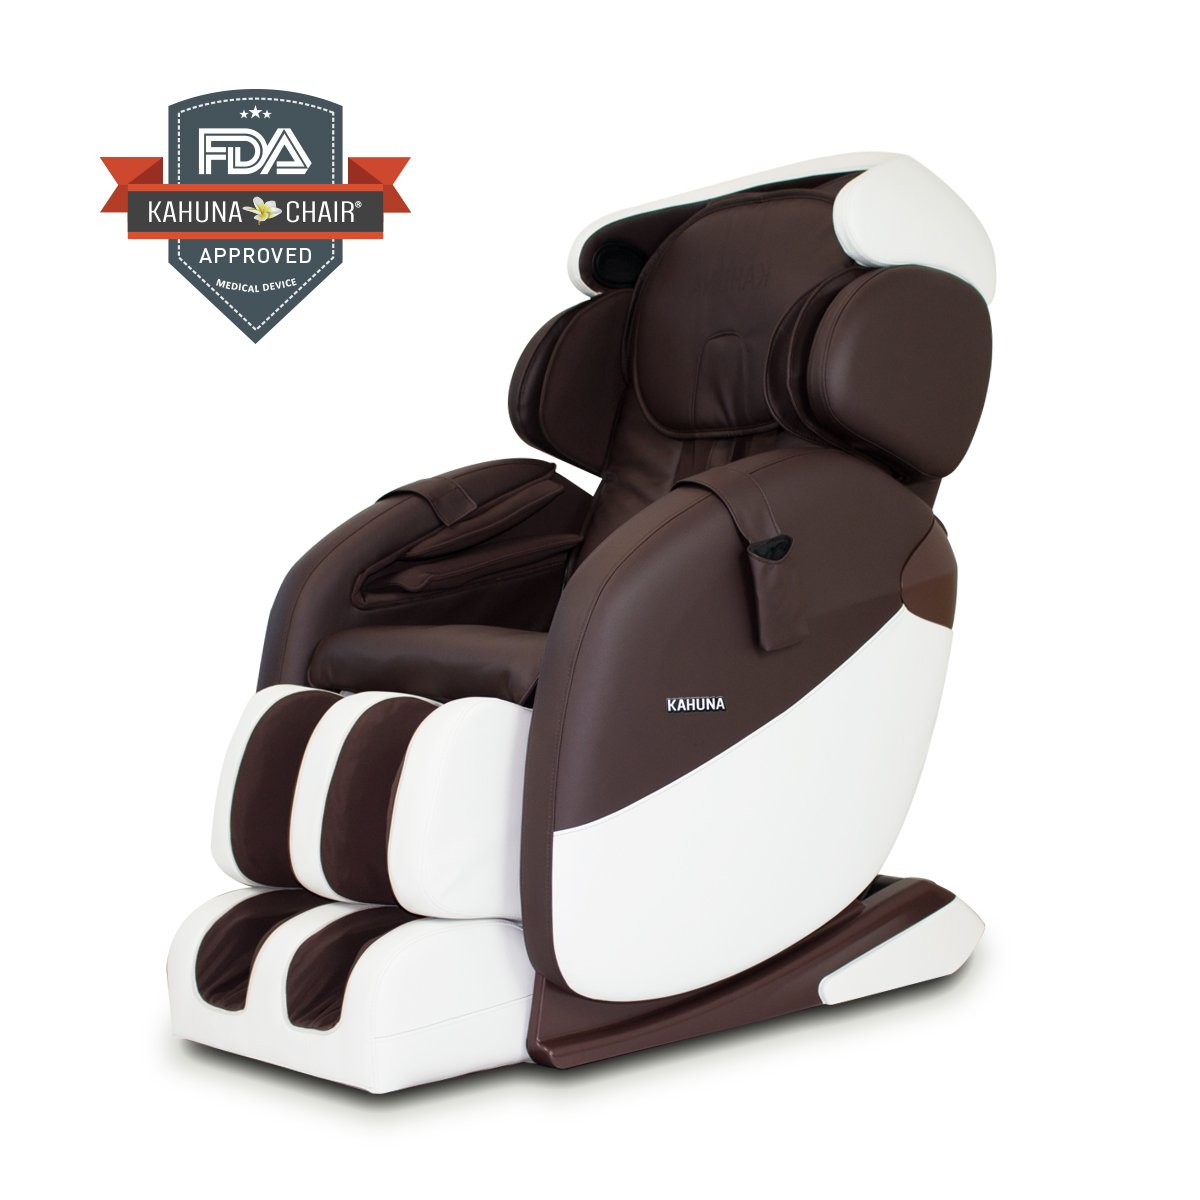 Premium Dynamic Target Spot kahuna Massage Chair LM-7000